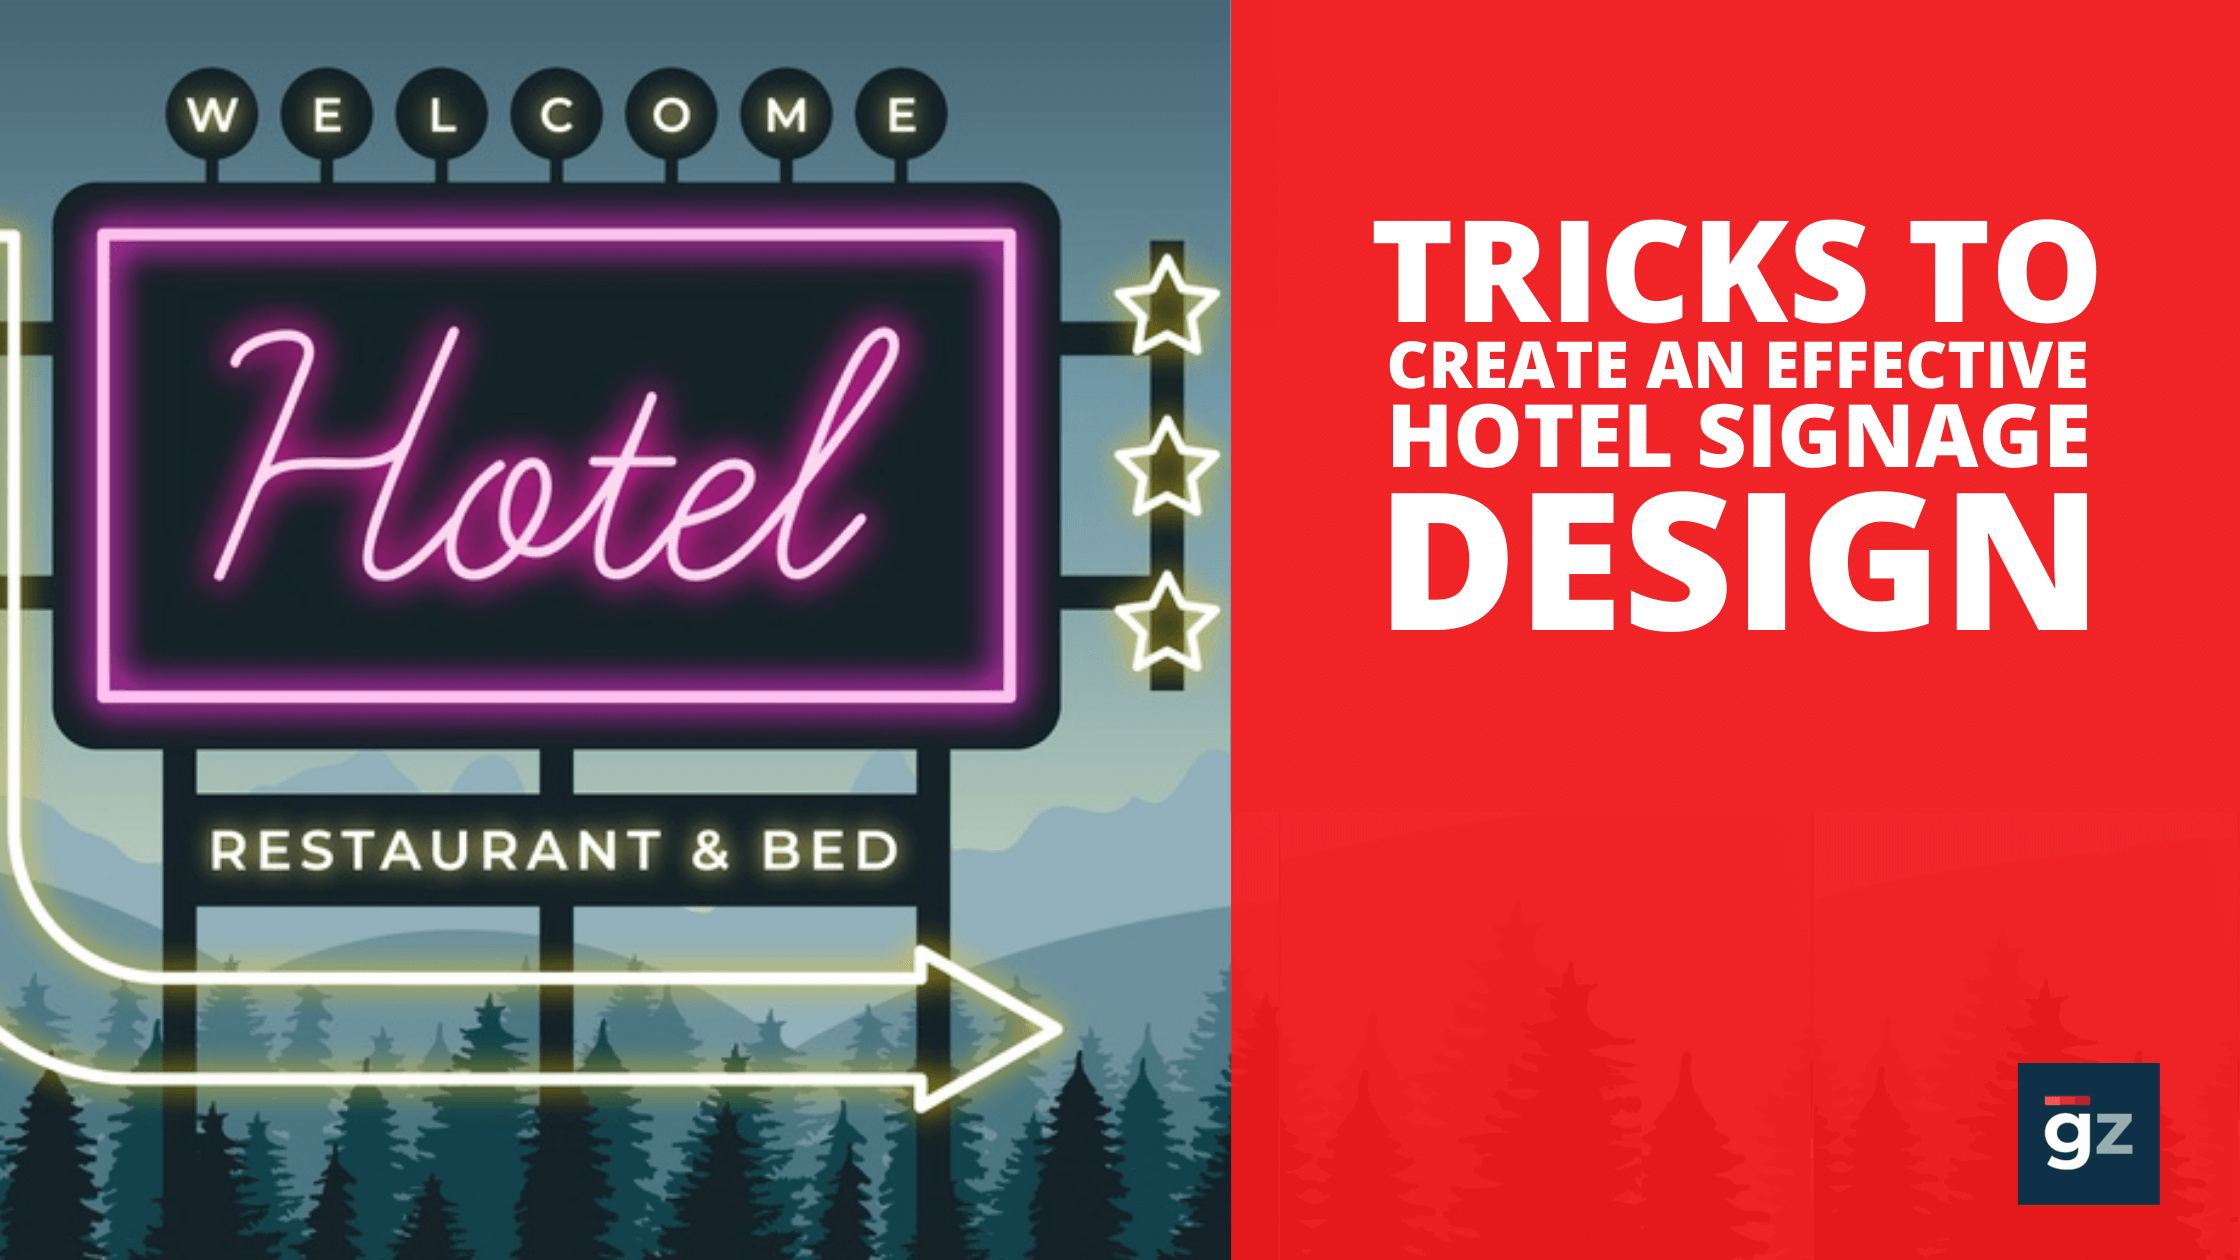 Tricks to Create an Effective Hotel Signage Design